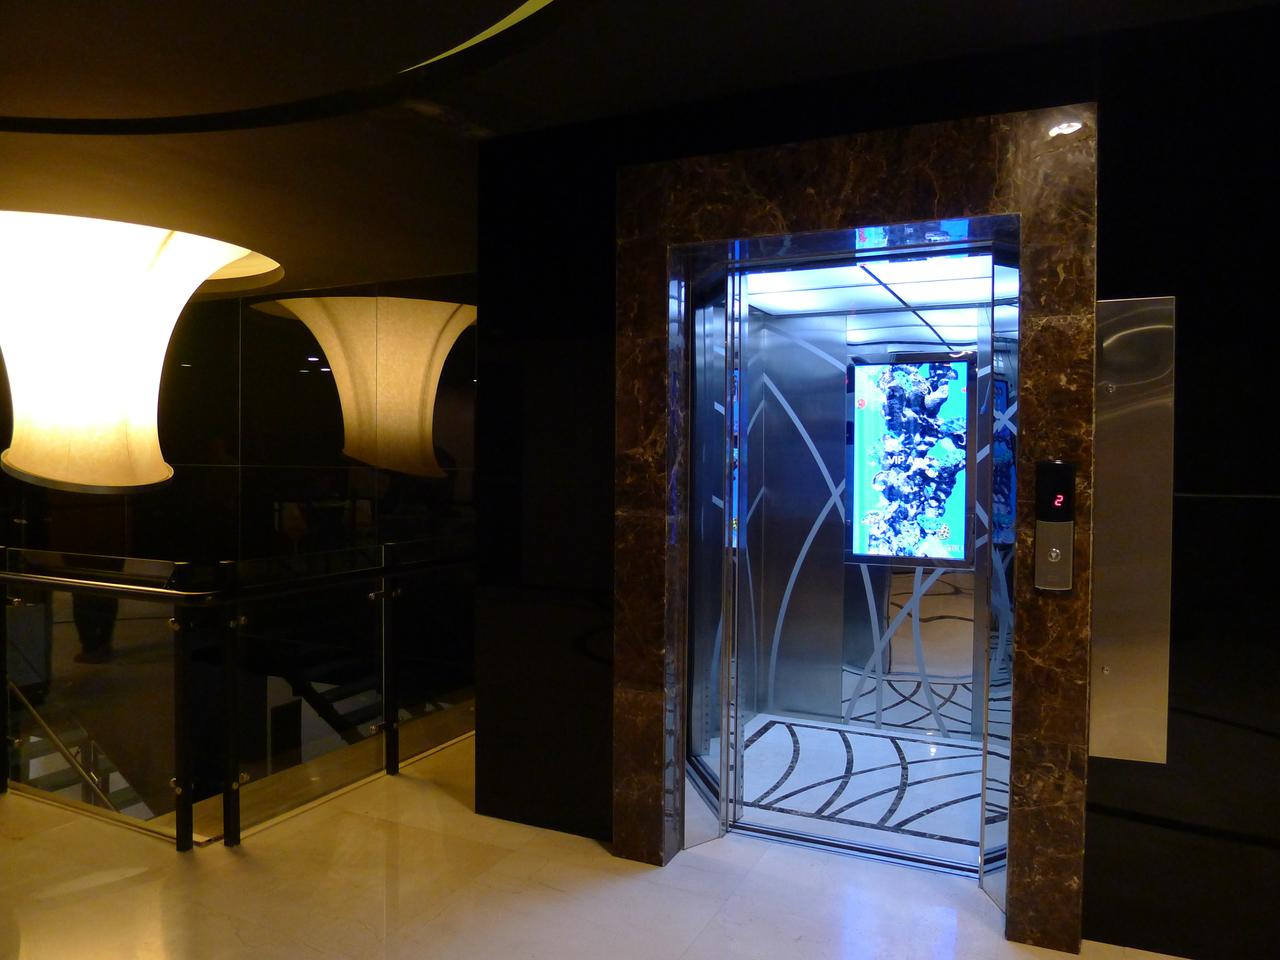 The DigiGage system has been installed in elevators in several countries